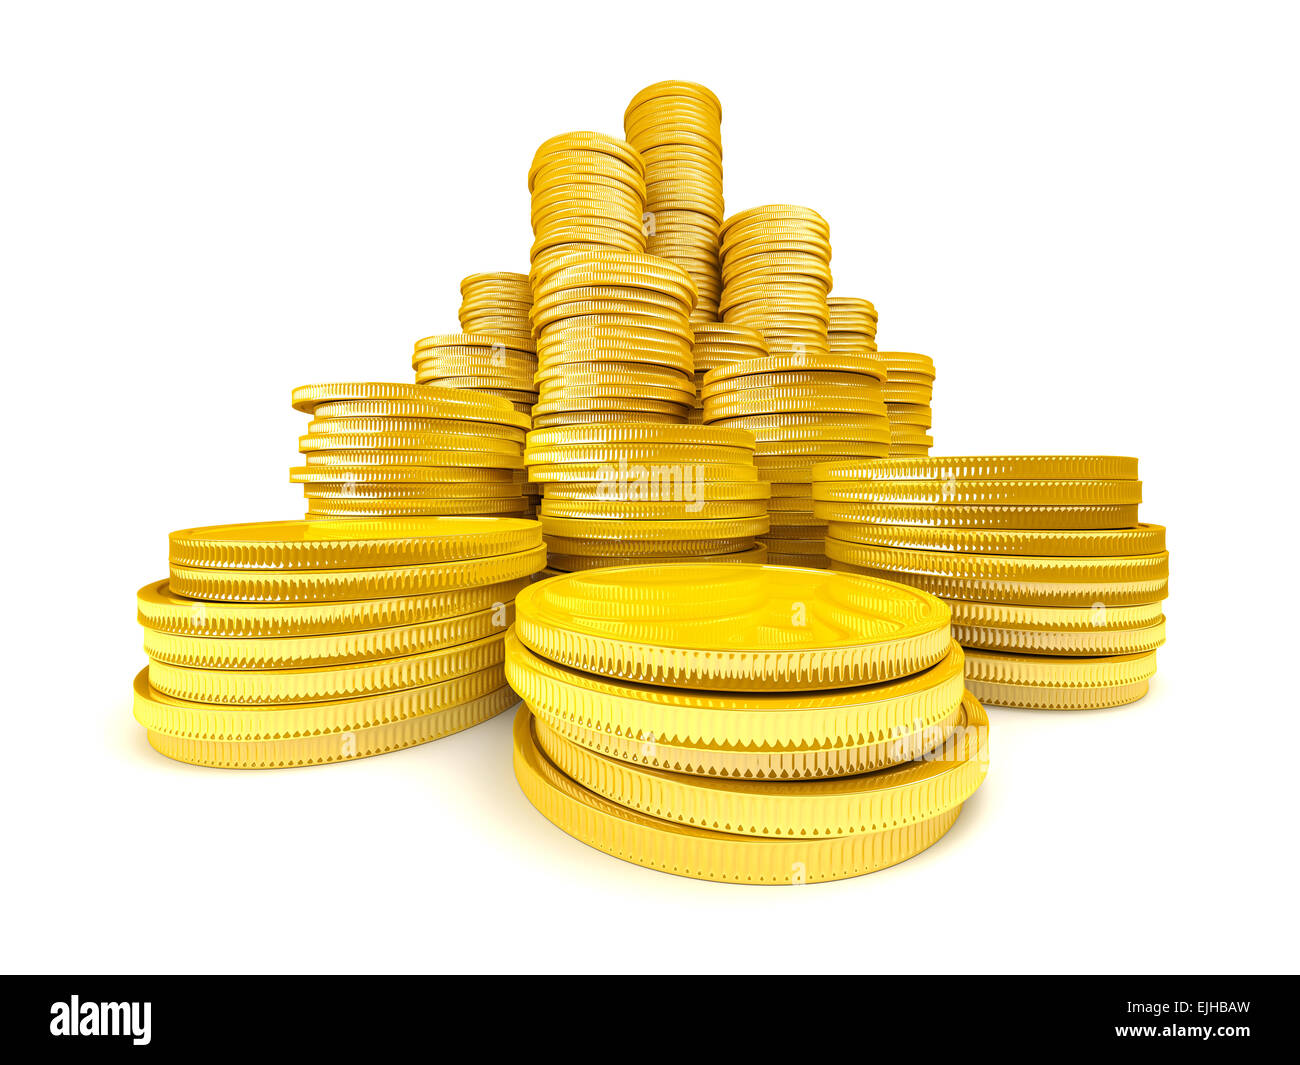 Stack of gold coins - Stock Image